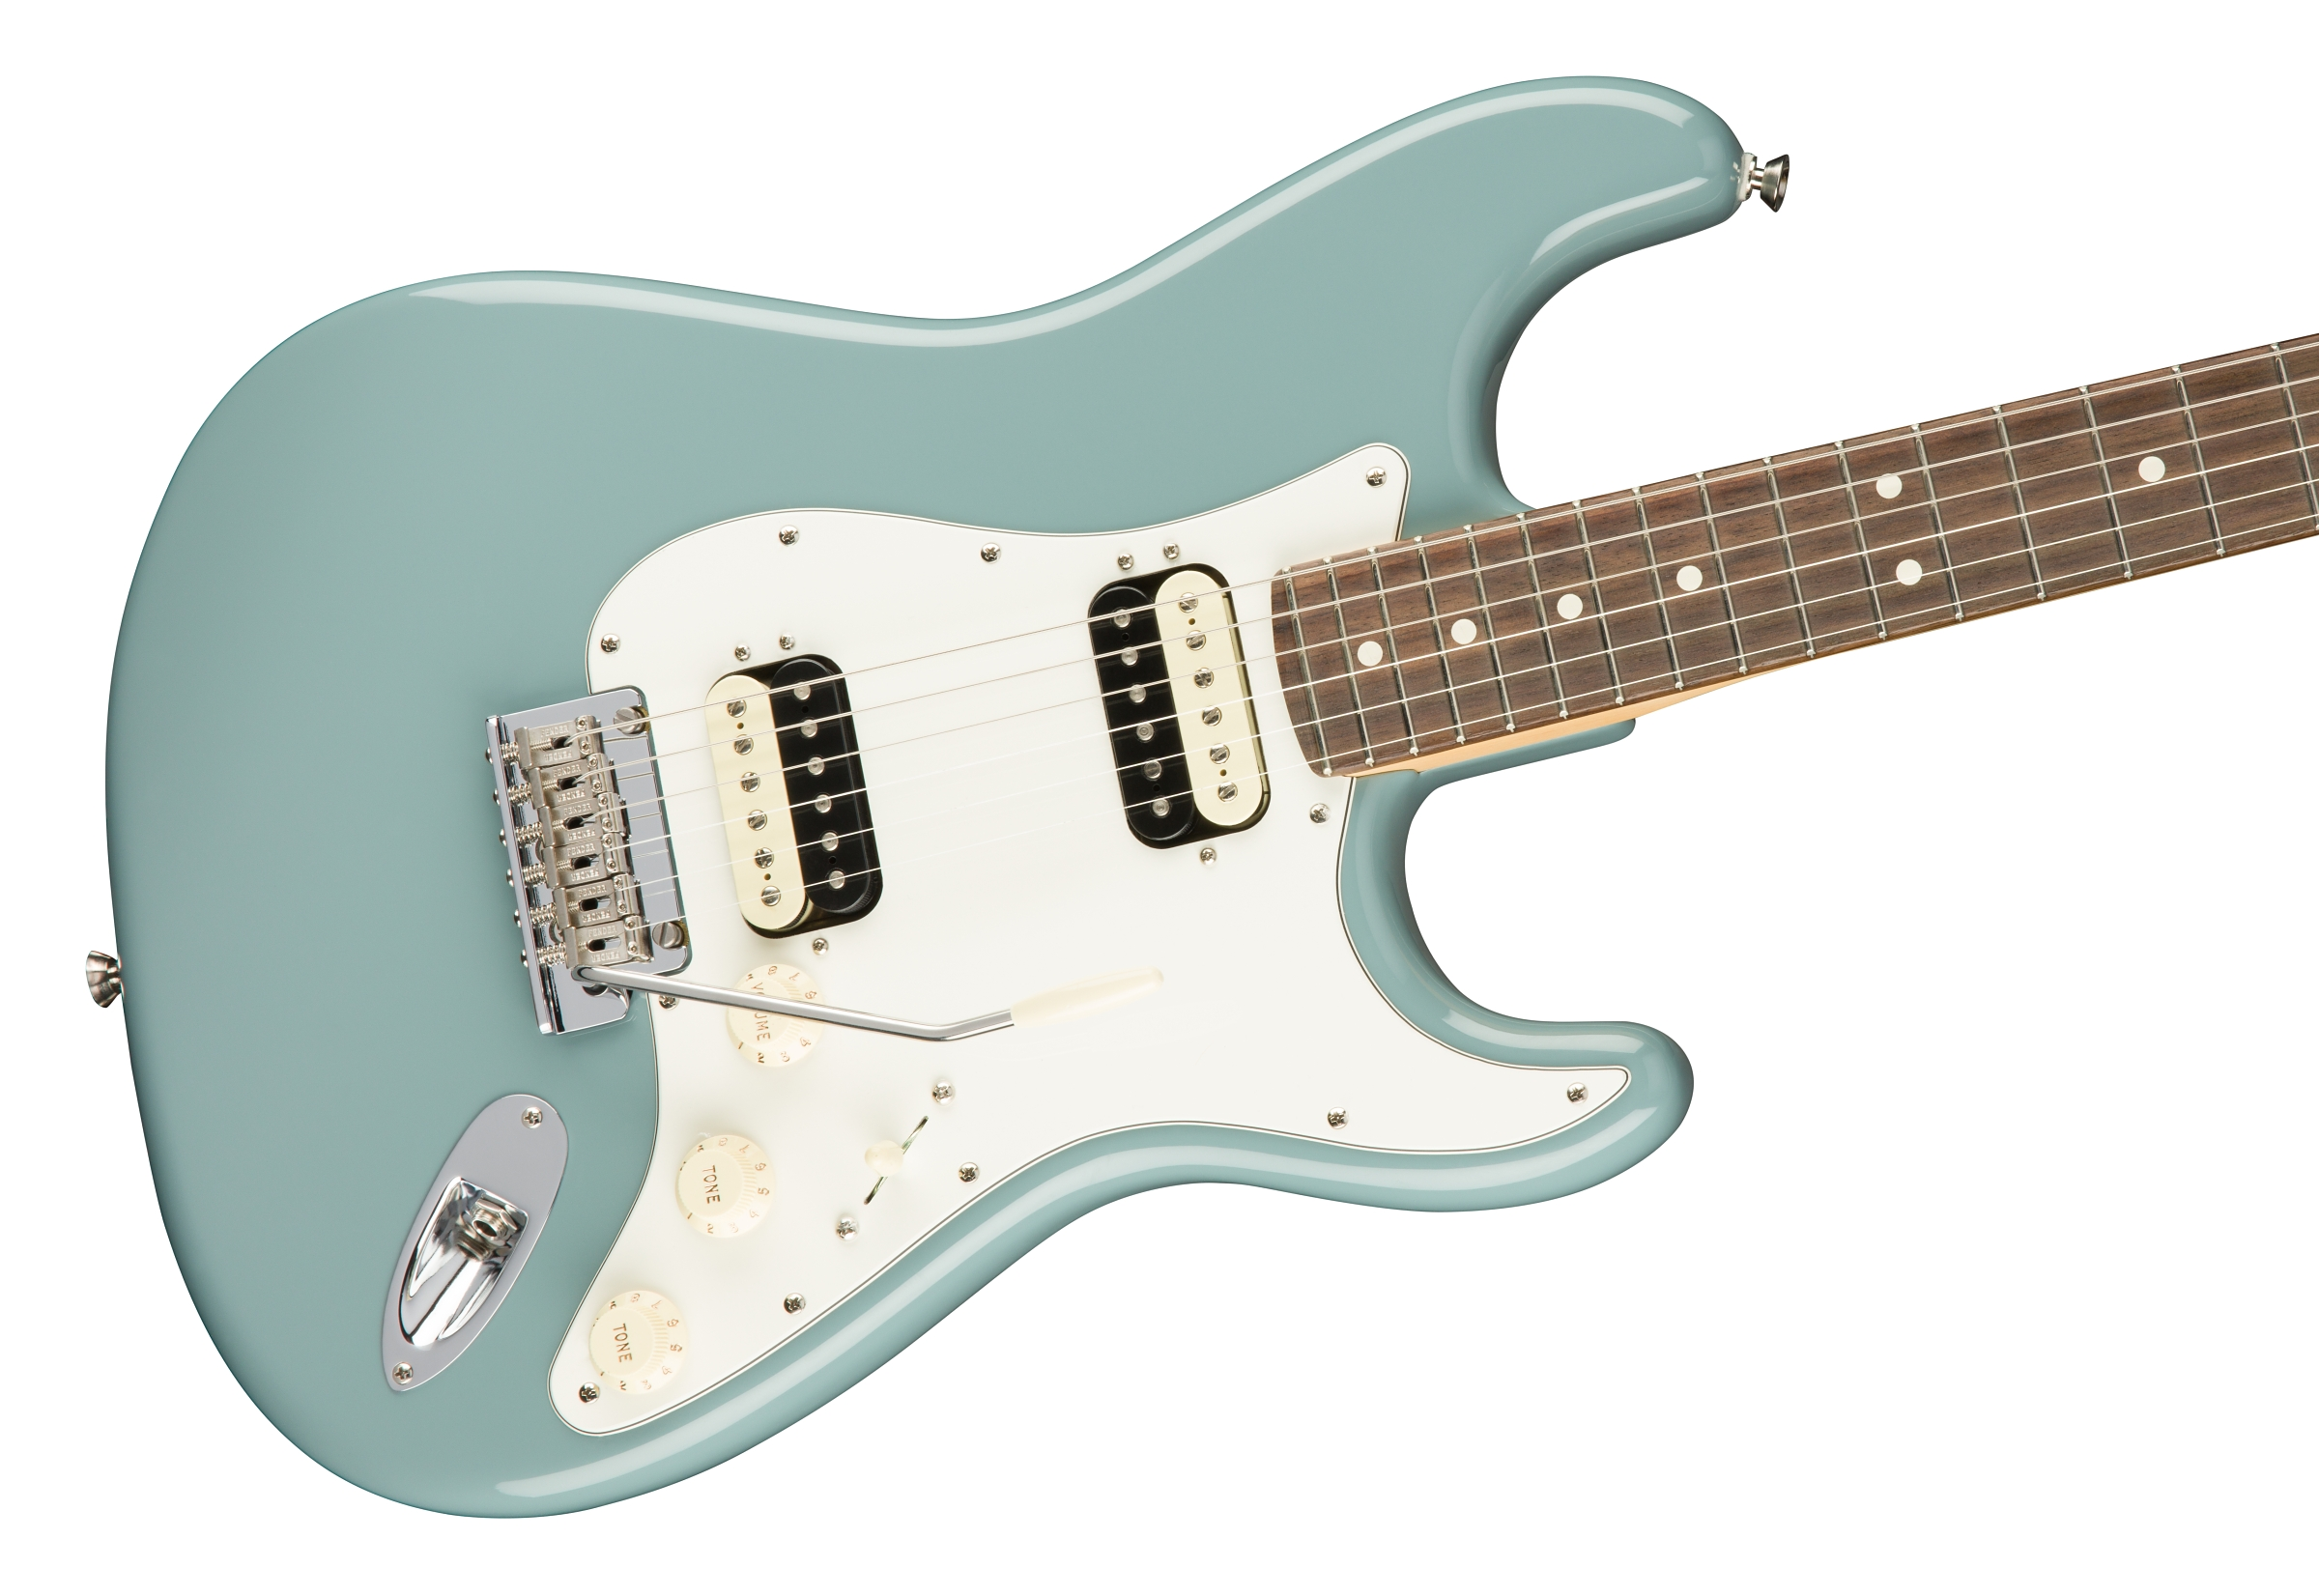 Pretty Reznor Wiring Diagram Tiny Bulldog Security Remote Starter With Keyless Entry Shaped Alarm Wiring 3 Humbuckers Young Bulldog Security Keyless Entry PinkRemote Start Diagram Fender American Pro Stratocaster® HH ShawBucker™, Rosewood ..